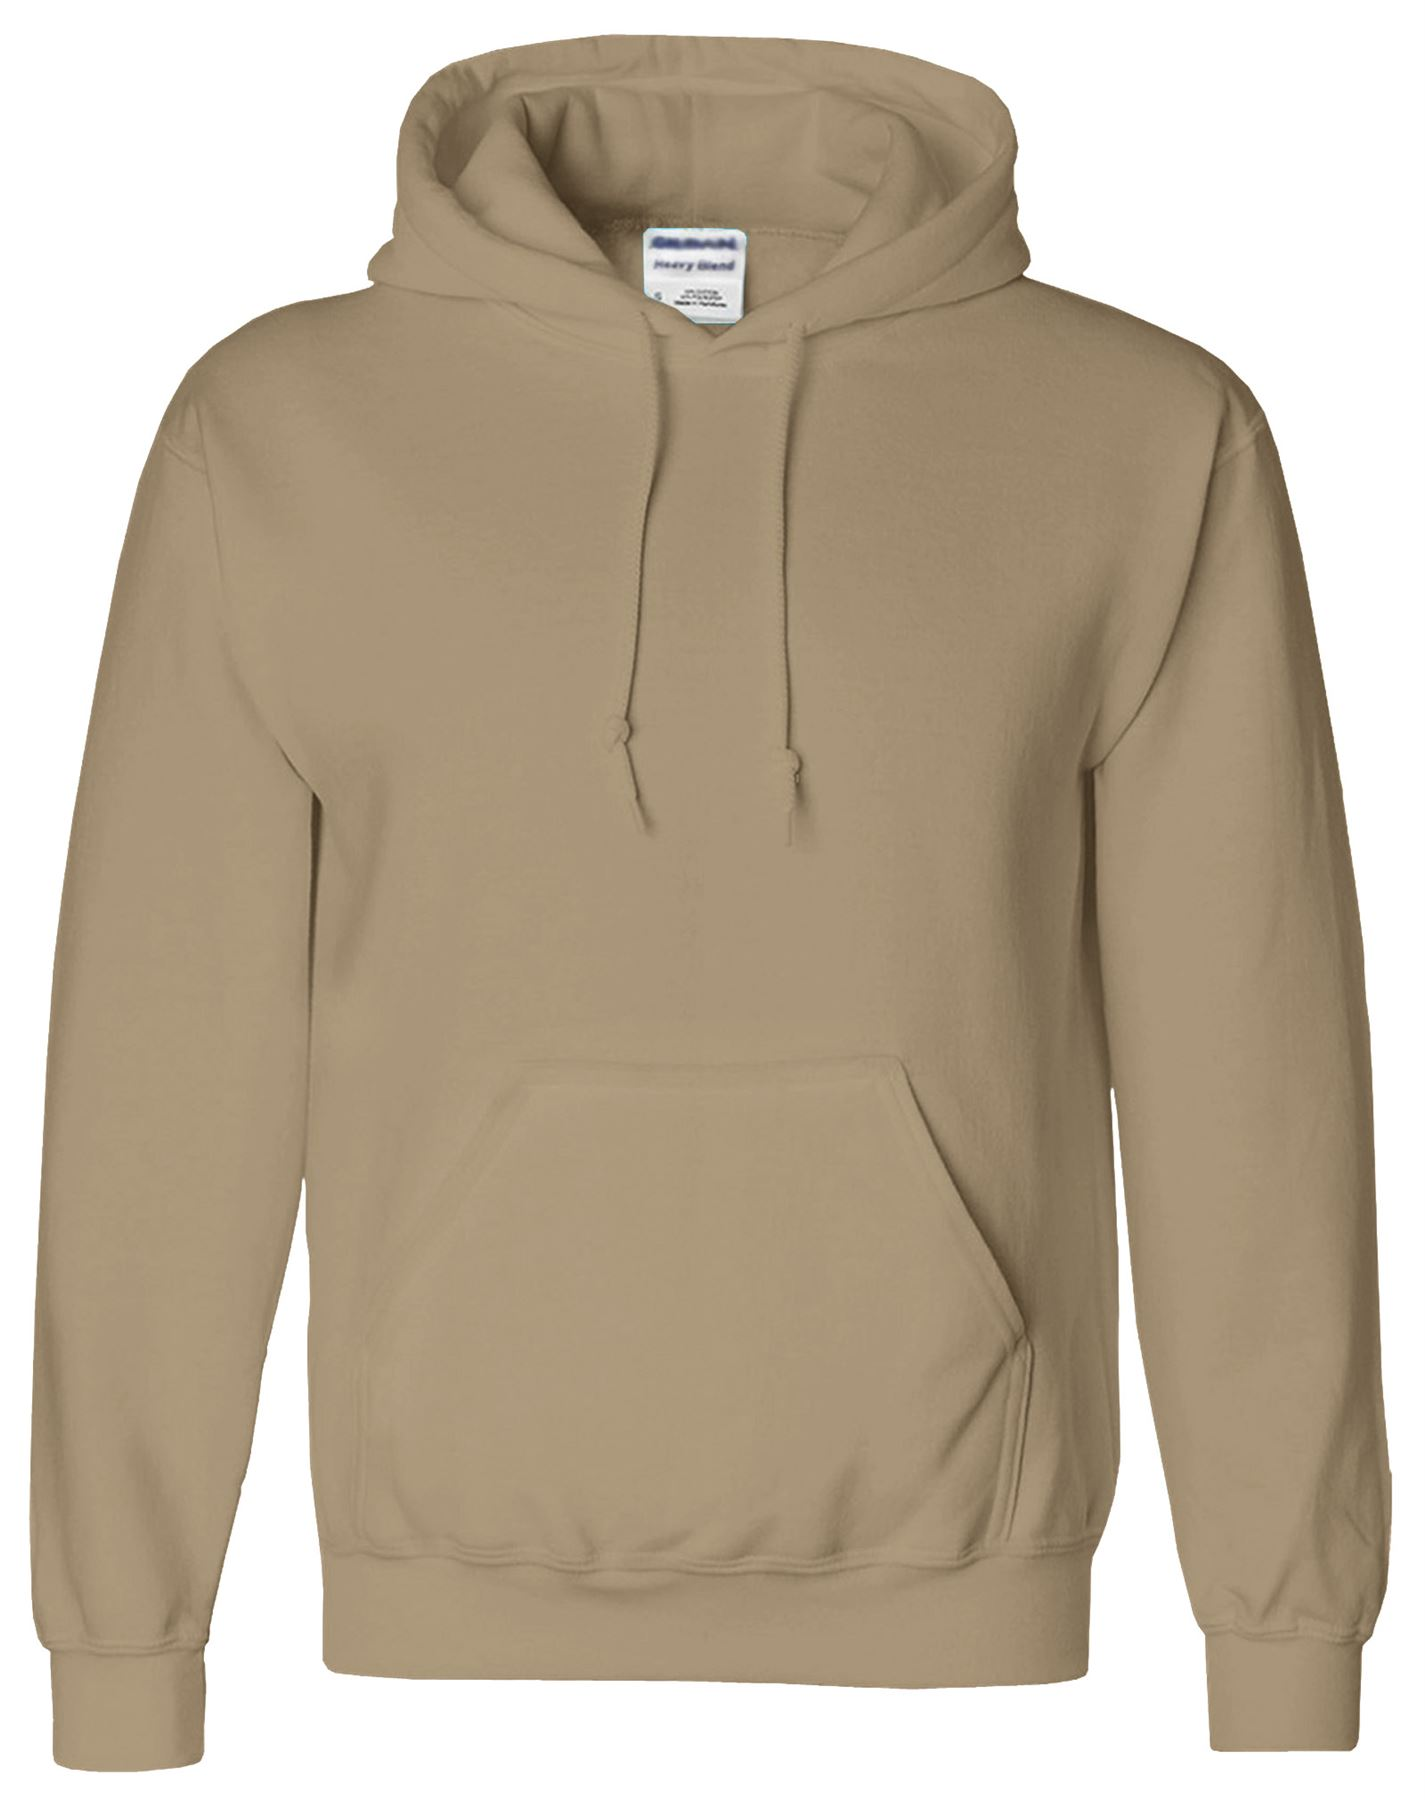 Shop for Sweat hoodies & sweatshirts from Zazzle. Choose a design from our huge selection of images, artwork, & photos.